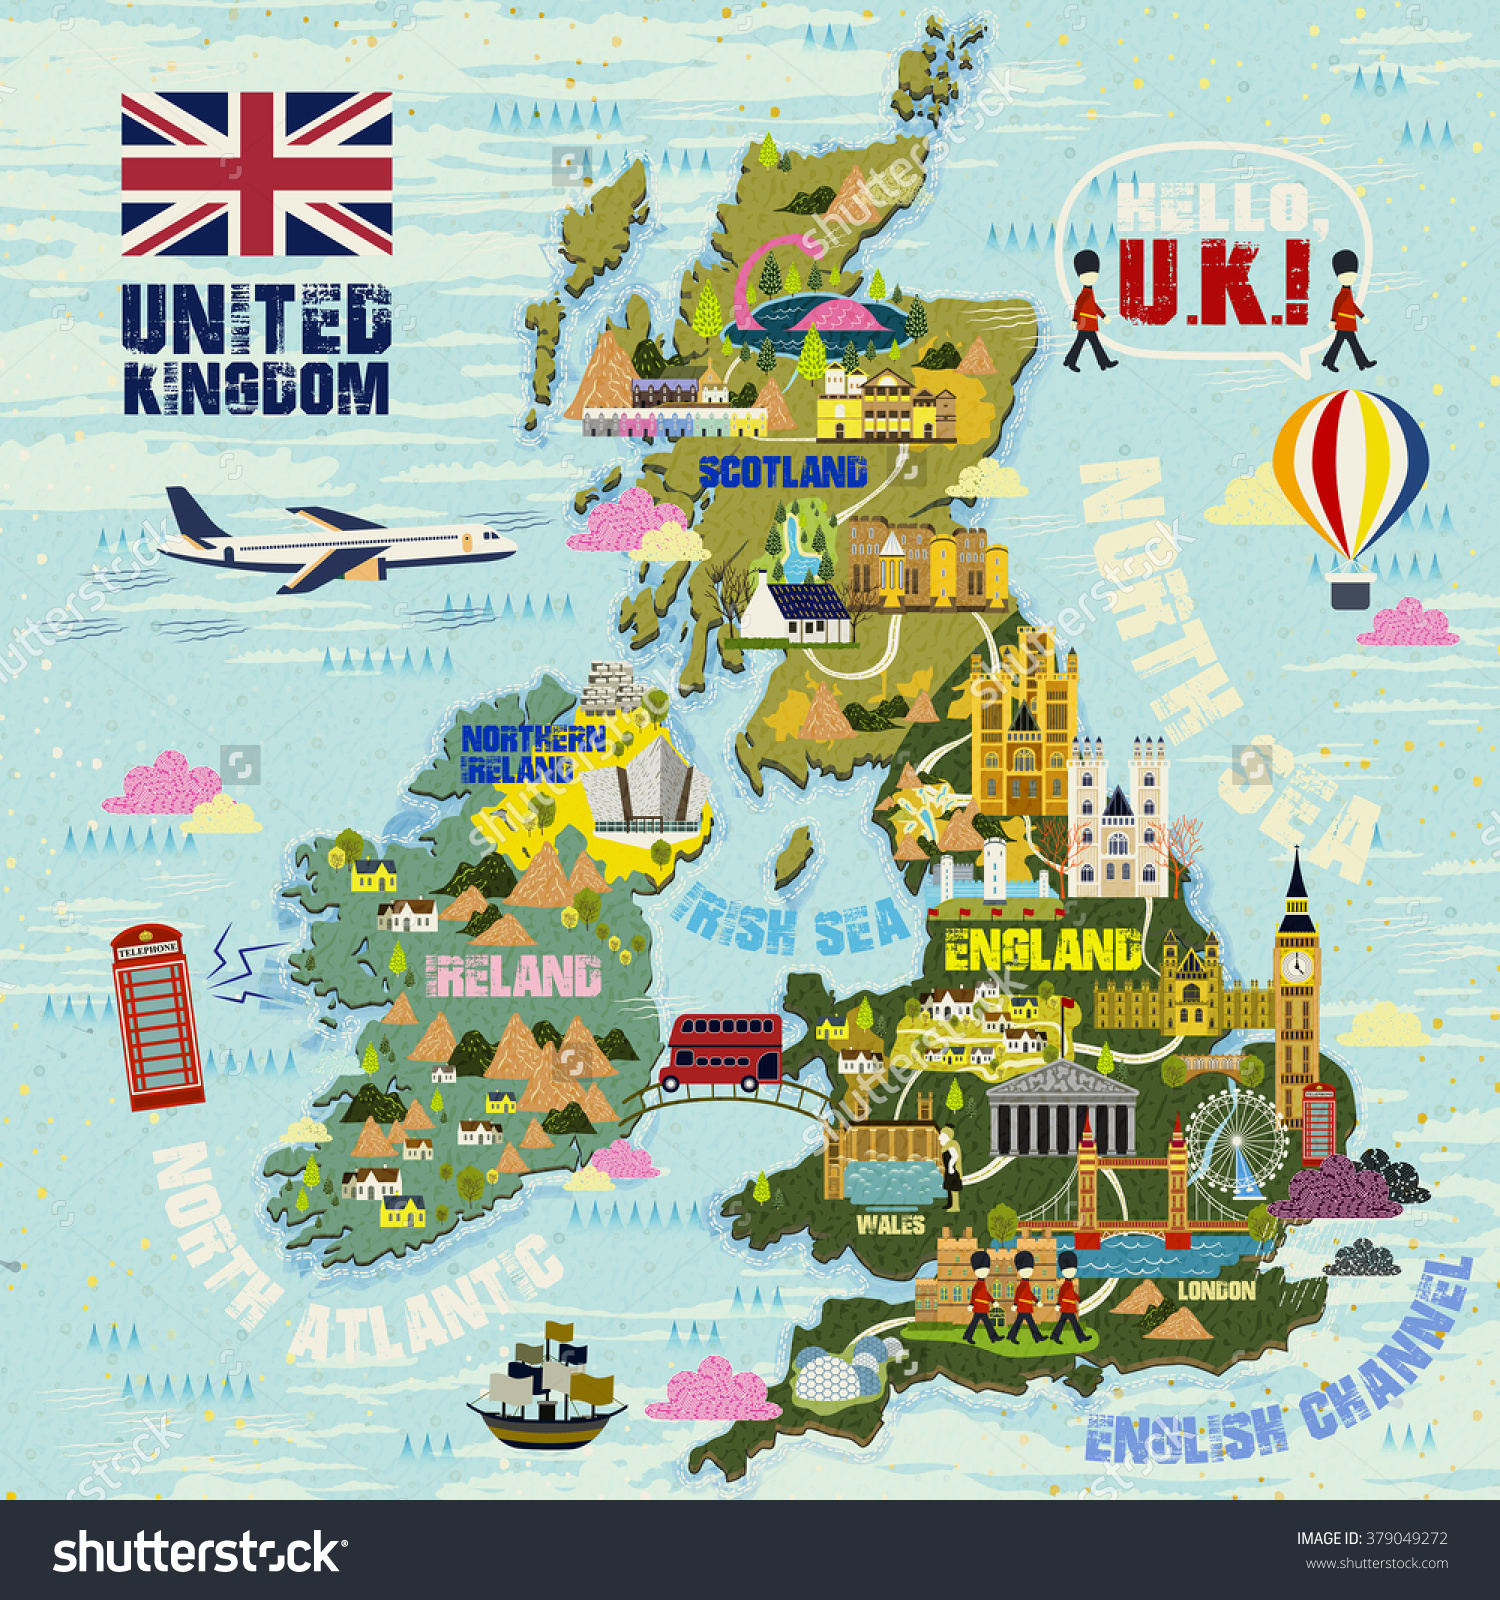 united kingdom 2 essay Click for list of online newspapers in united kingdom- all online newspapers from united kingdom have free access to todays breaking news from united kingdom.